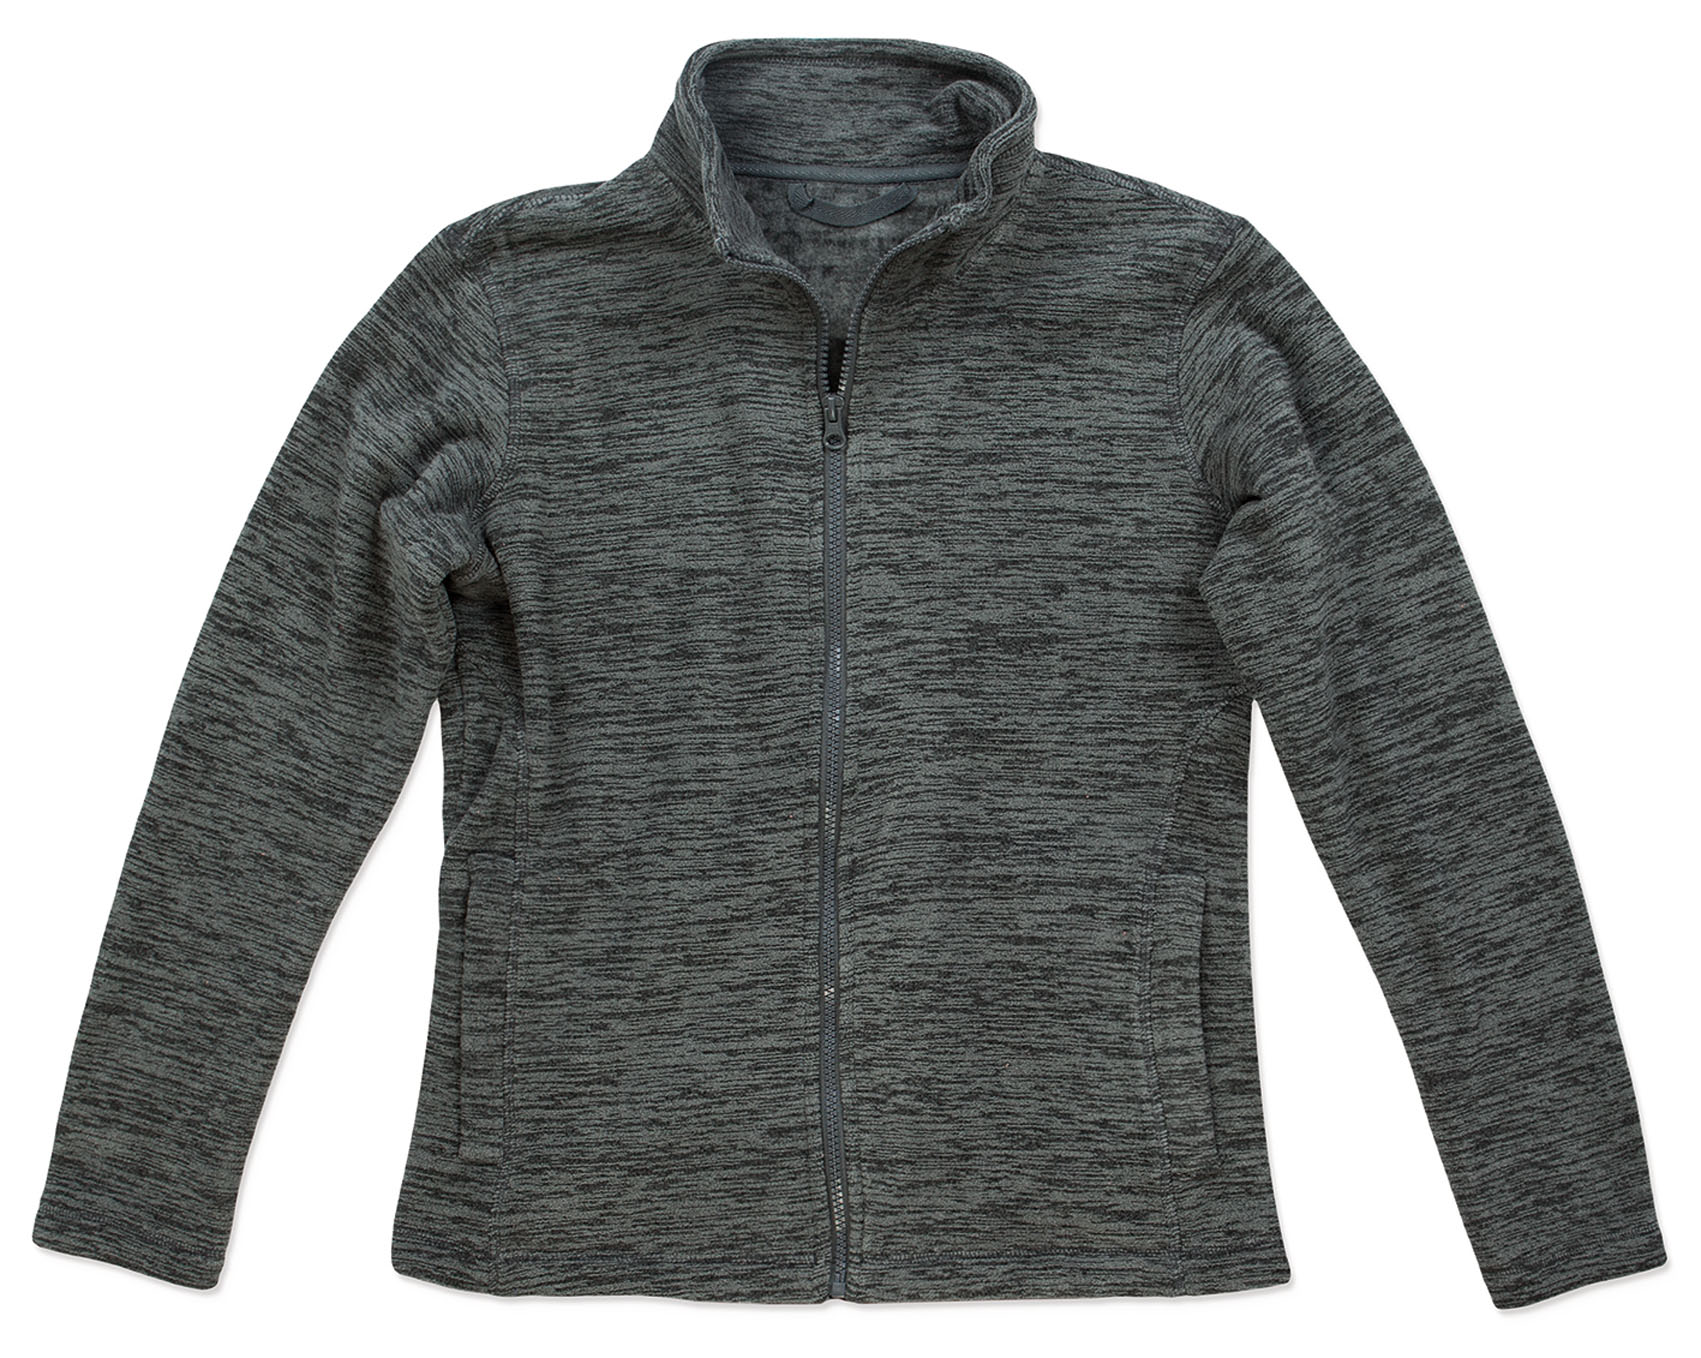 Stedman Melange Fleece Jacket Active for her